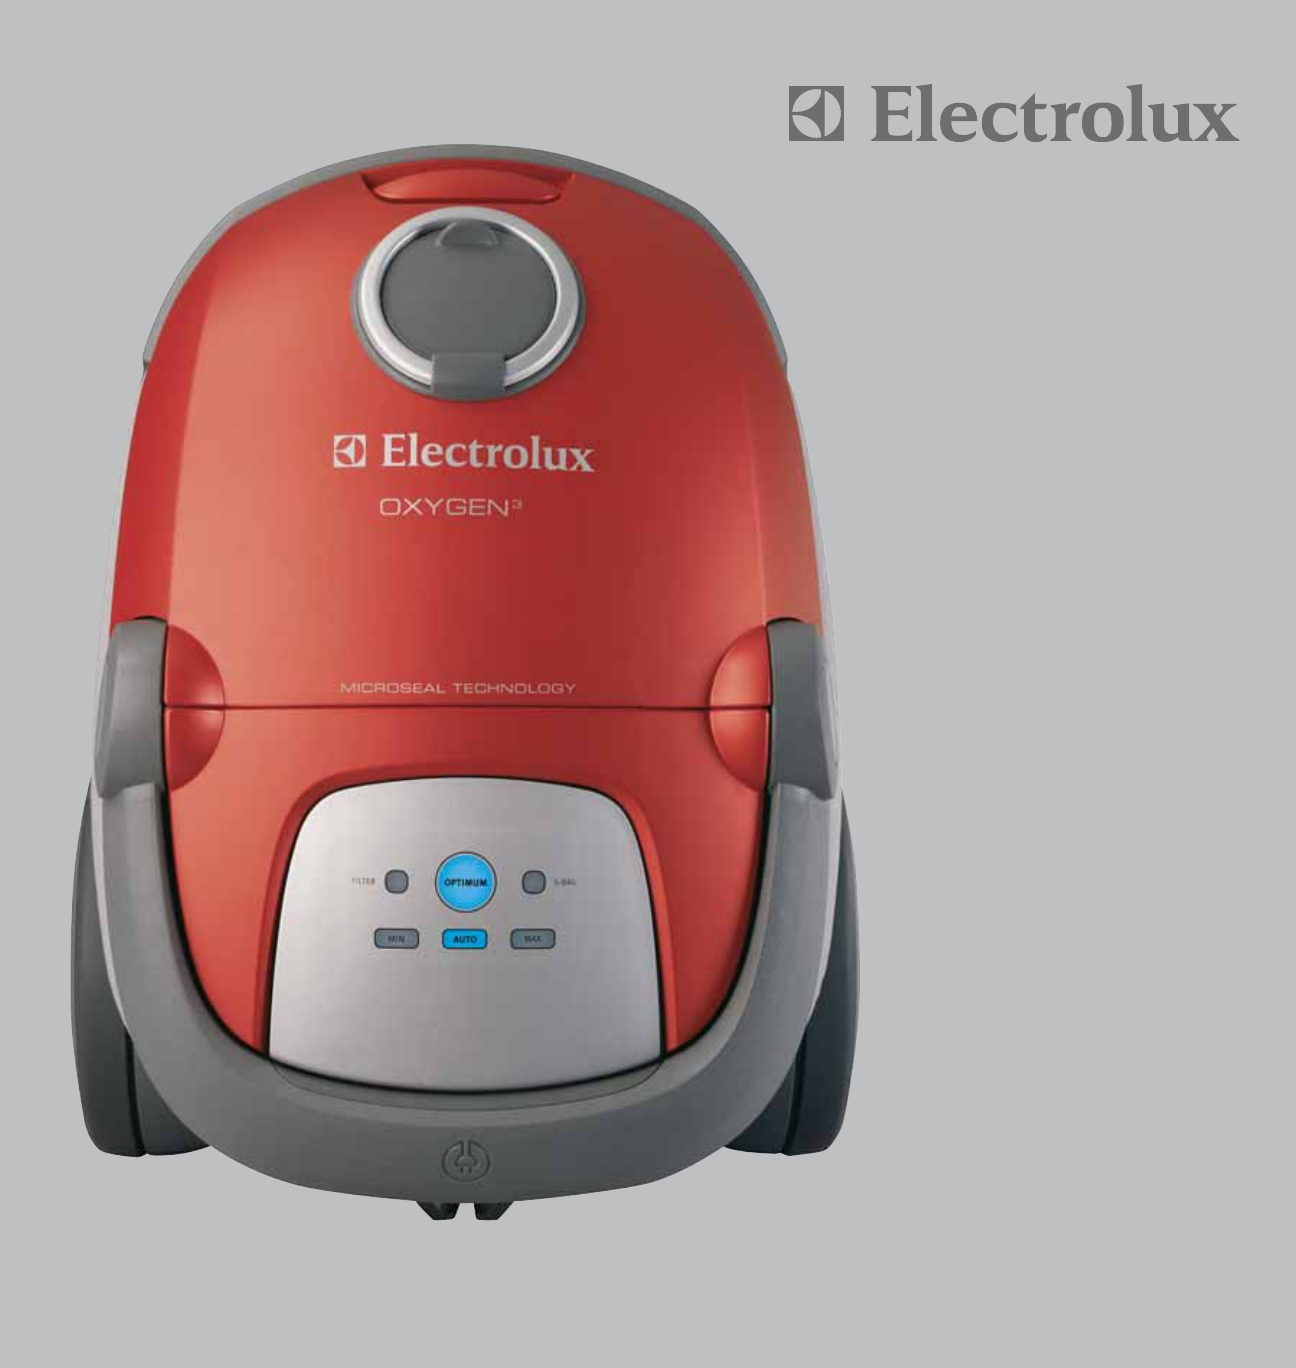 Electrolux Vacuum Google Search Form Styling Product Design Schematics